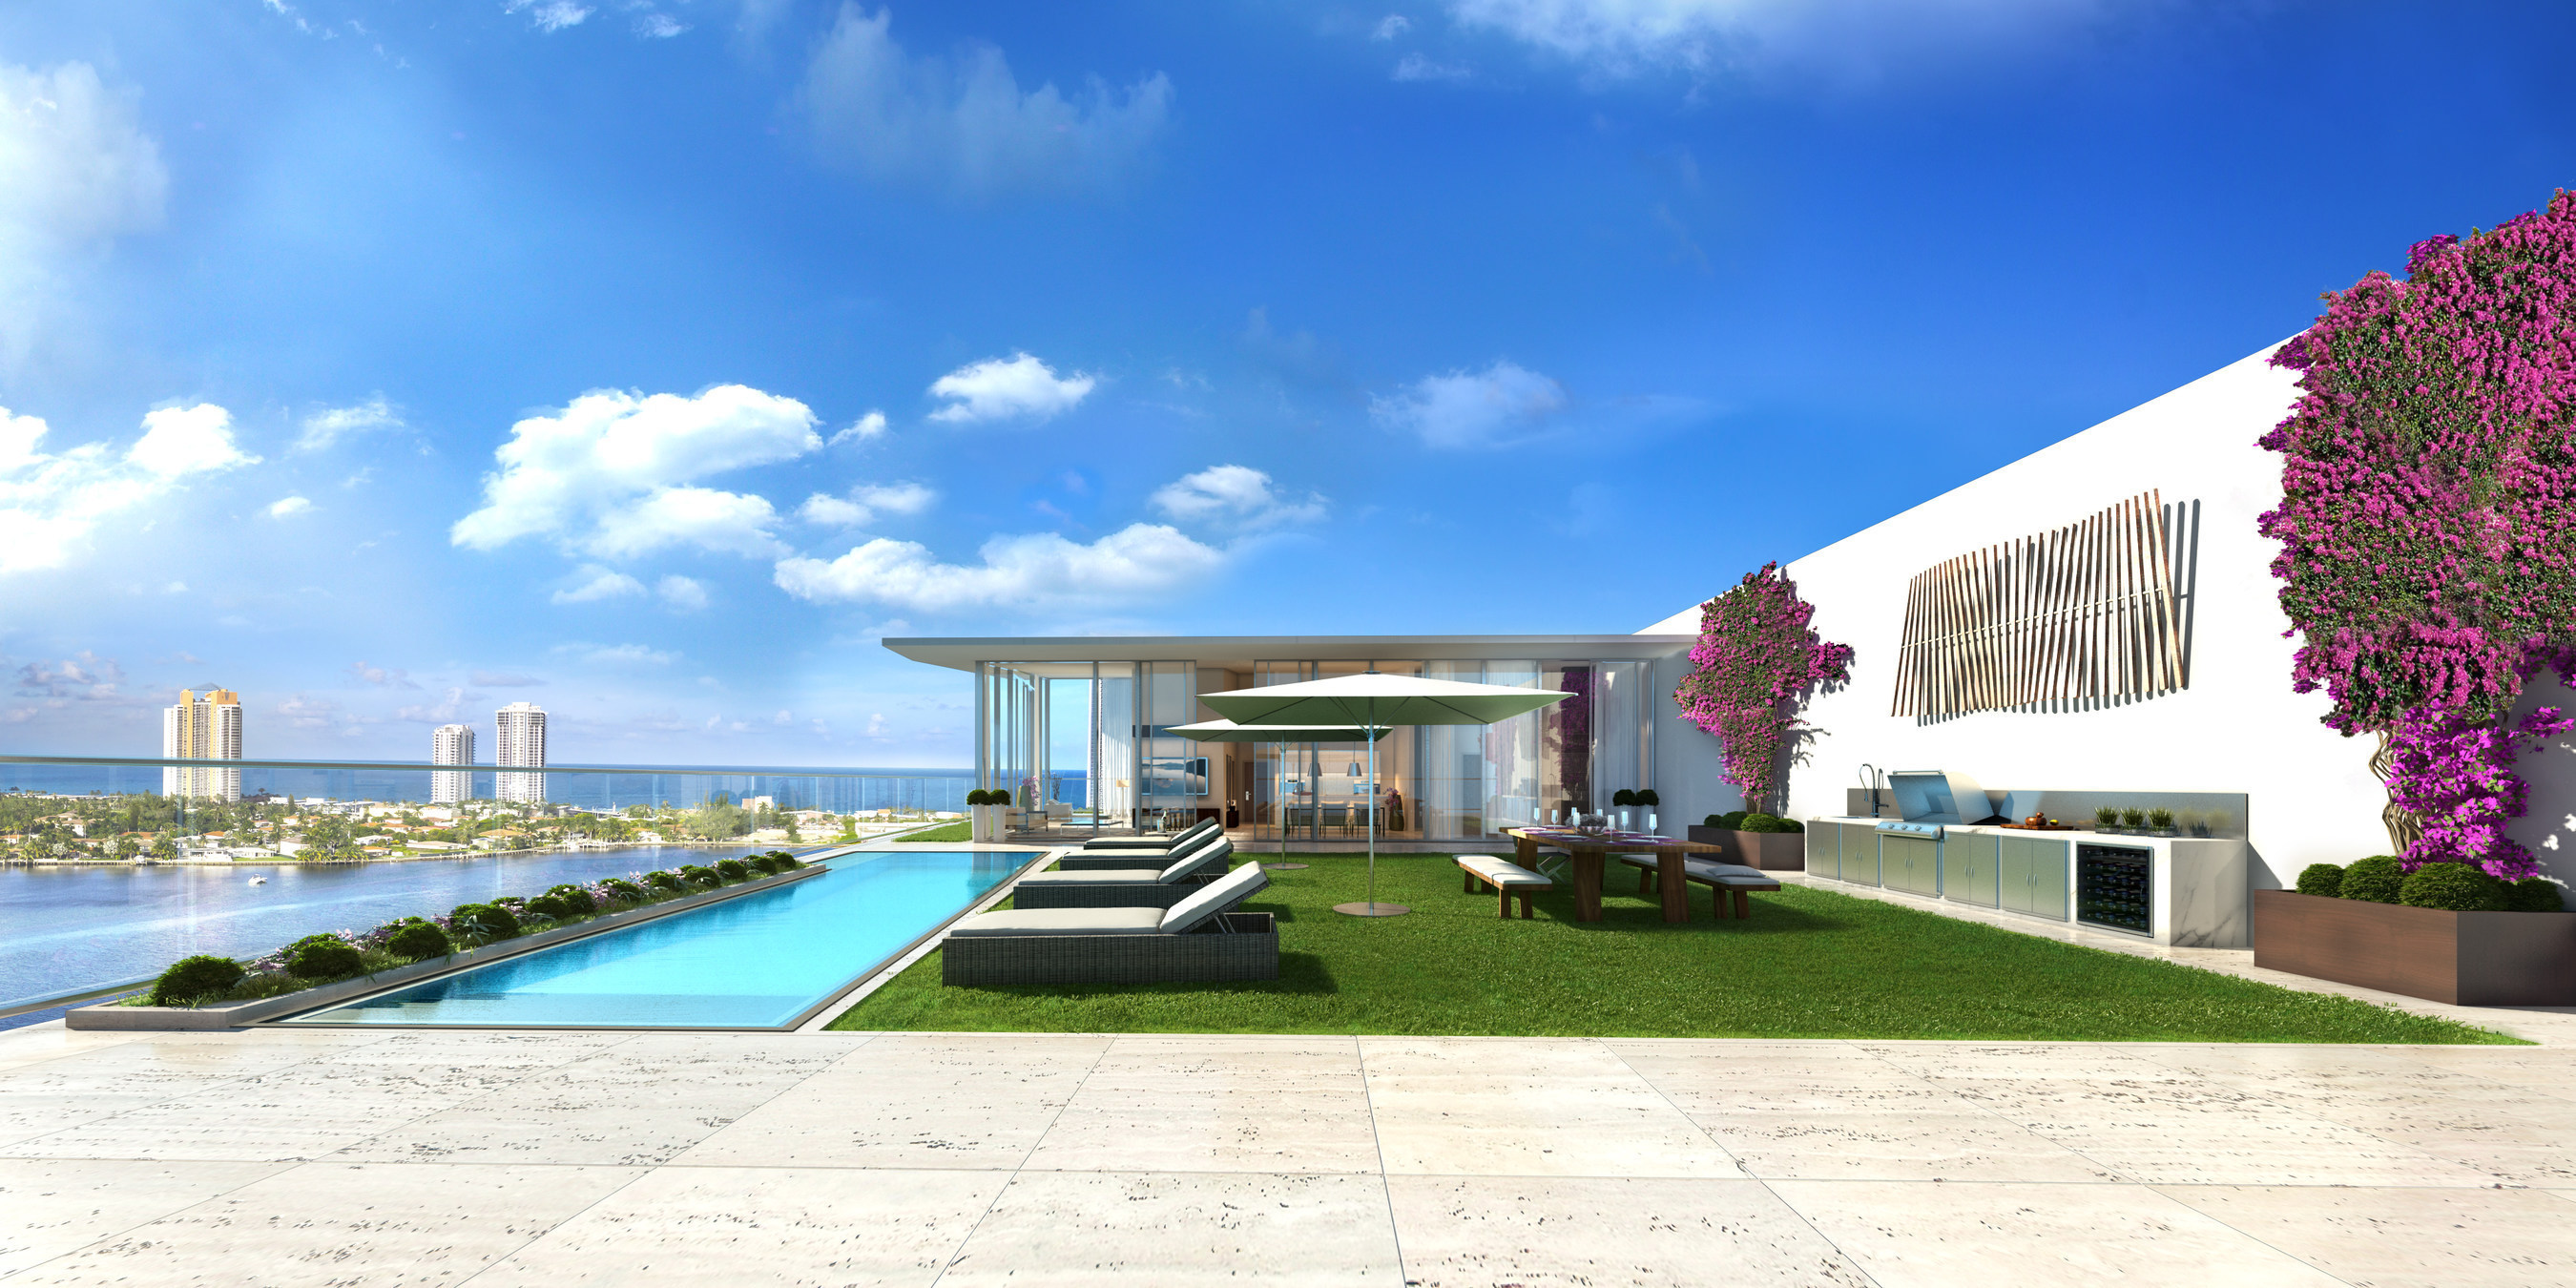 Residential Real Estate Development : Prive at island estates named the residential real